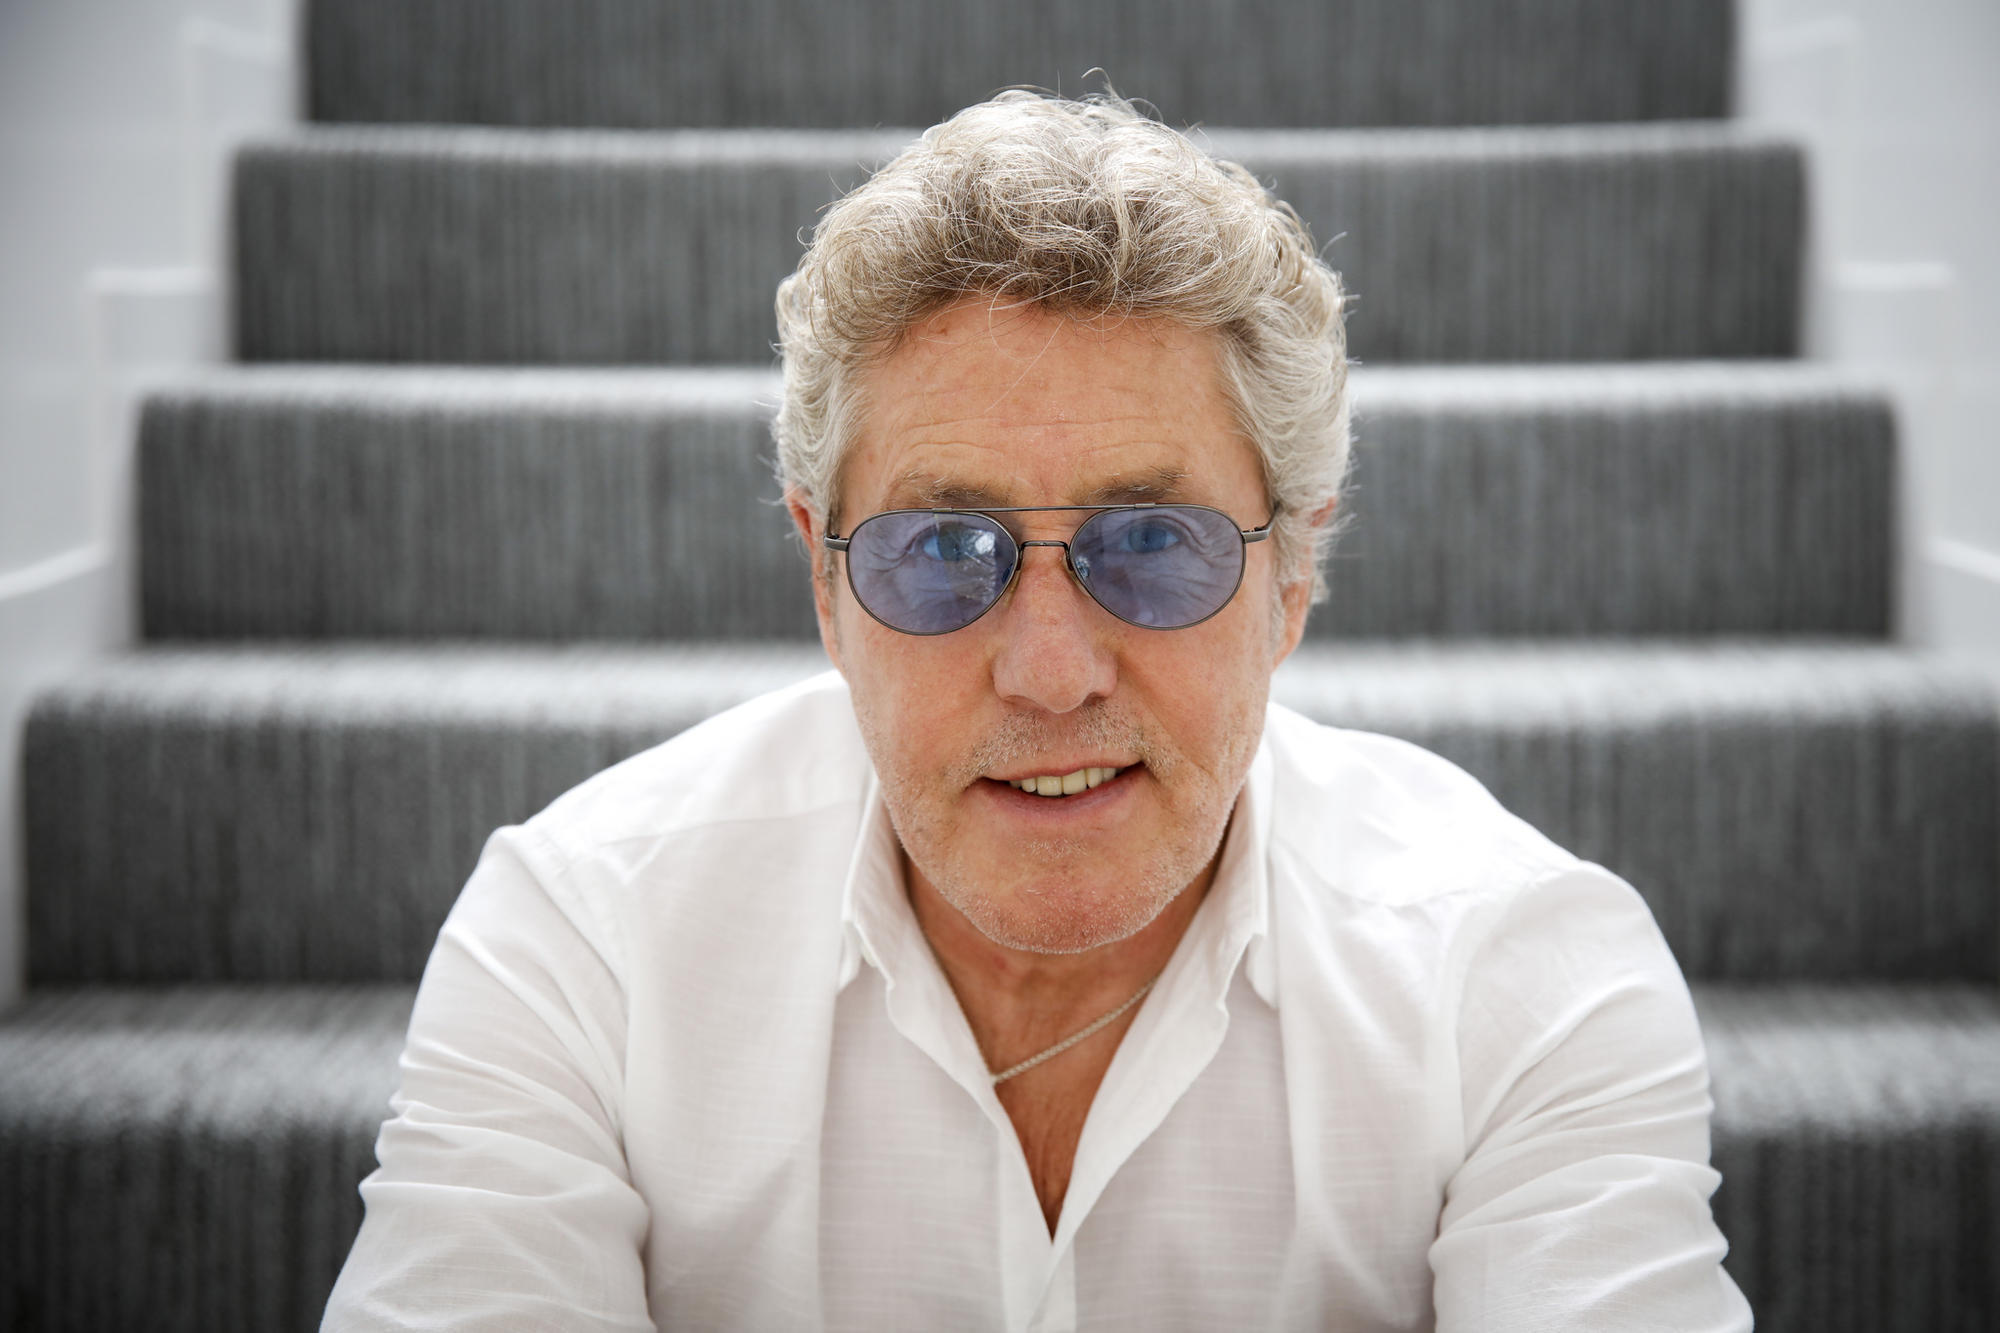 Roger Daltrey on swagger and sensitivity, the new Who tour, plus the Beatles question